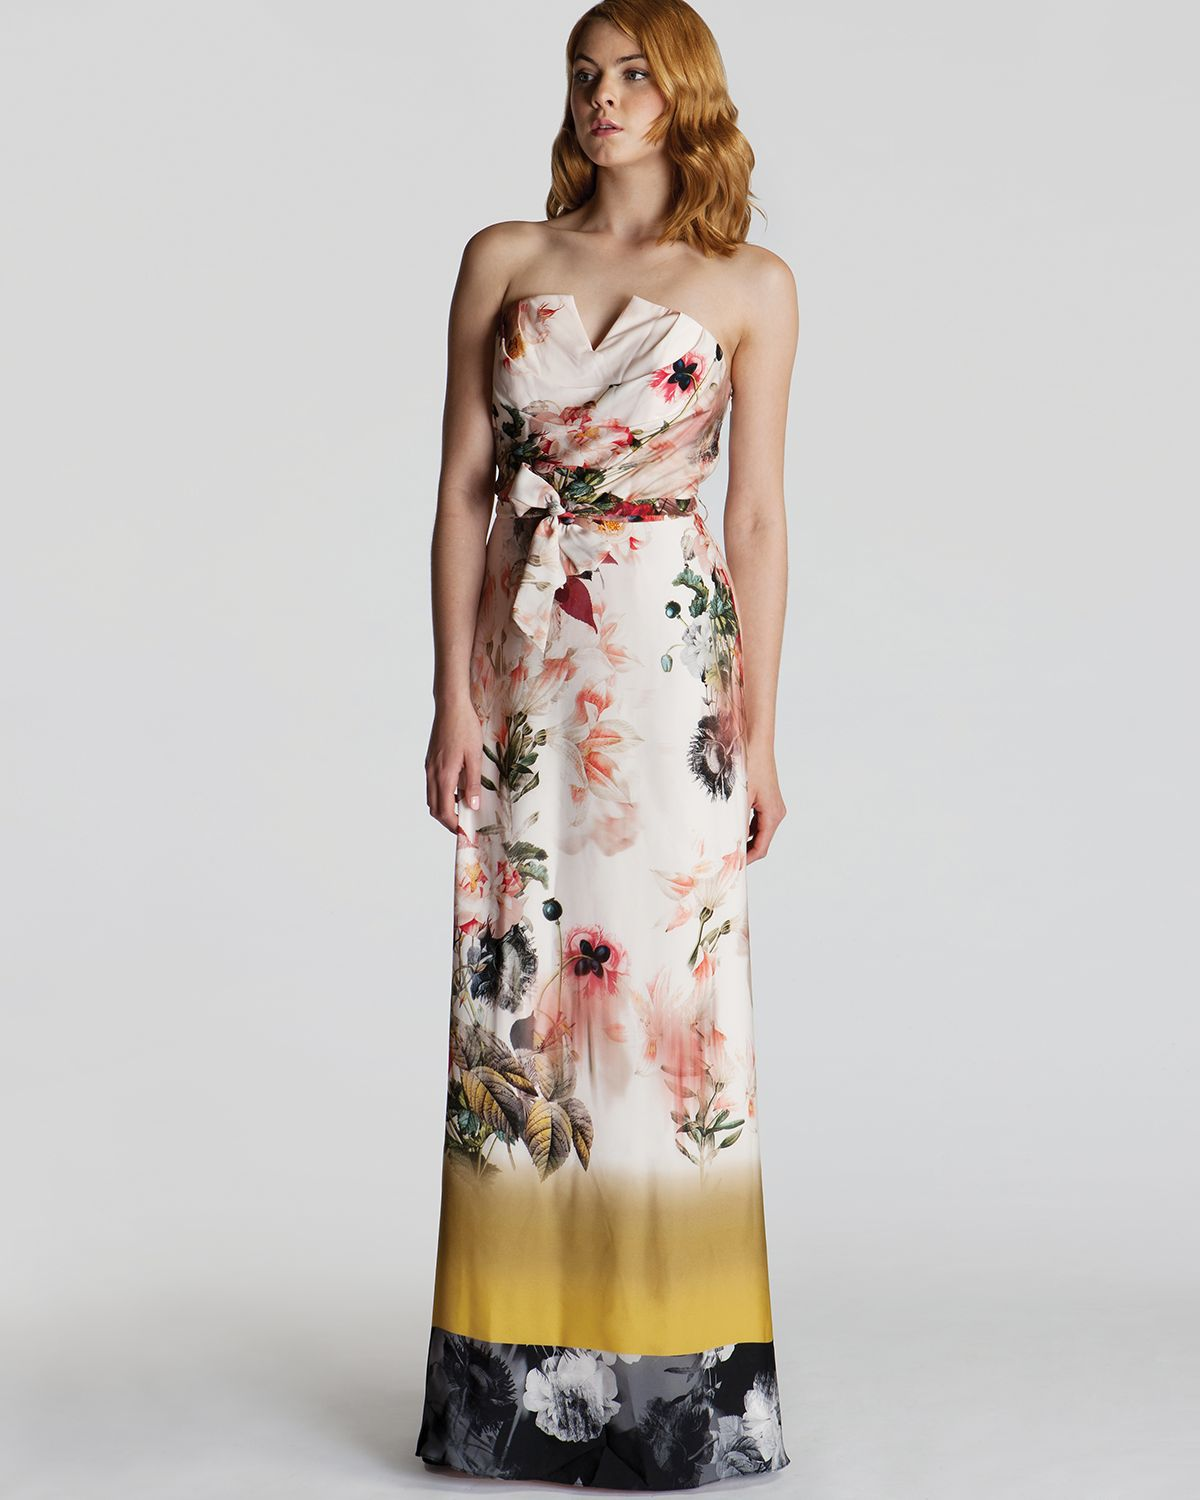 Lyst - Ted baker Gown Aymay Opulent Bloom